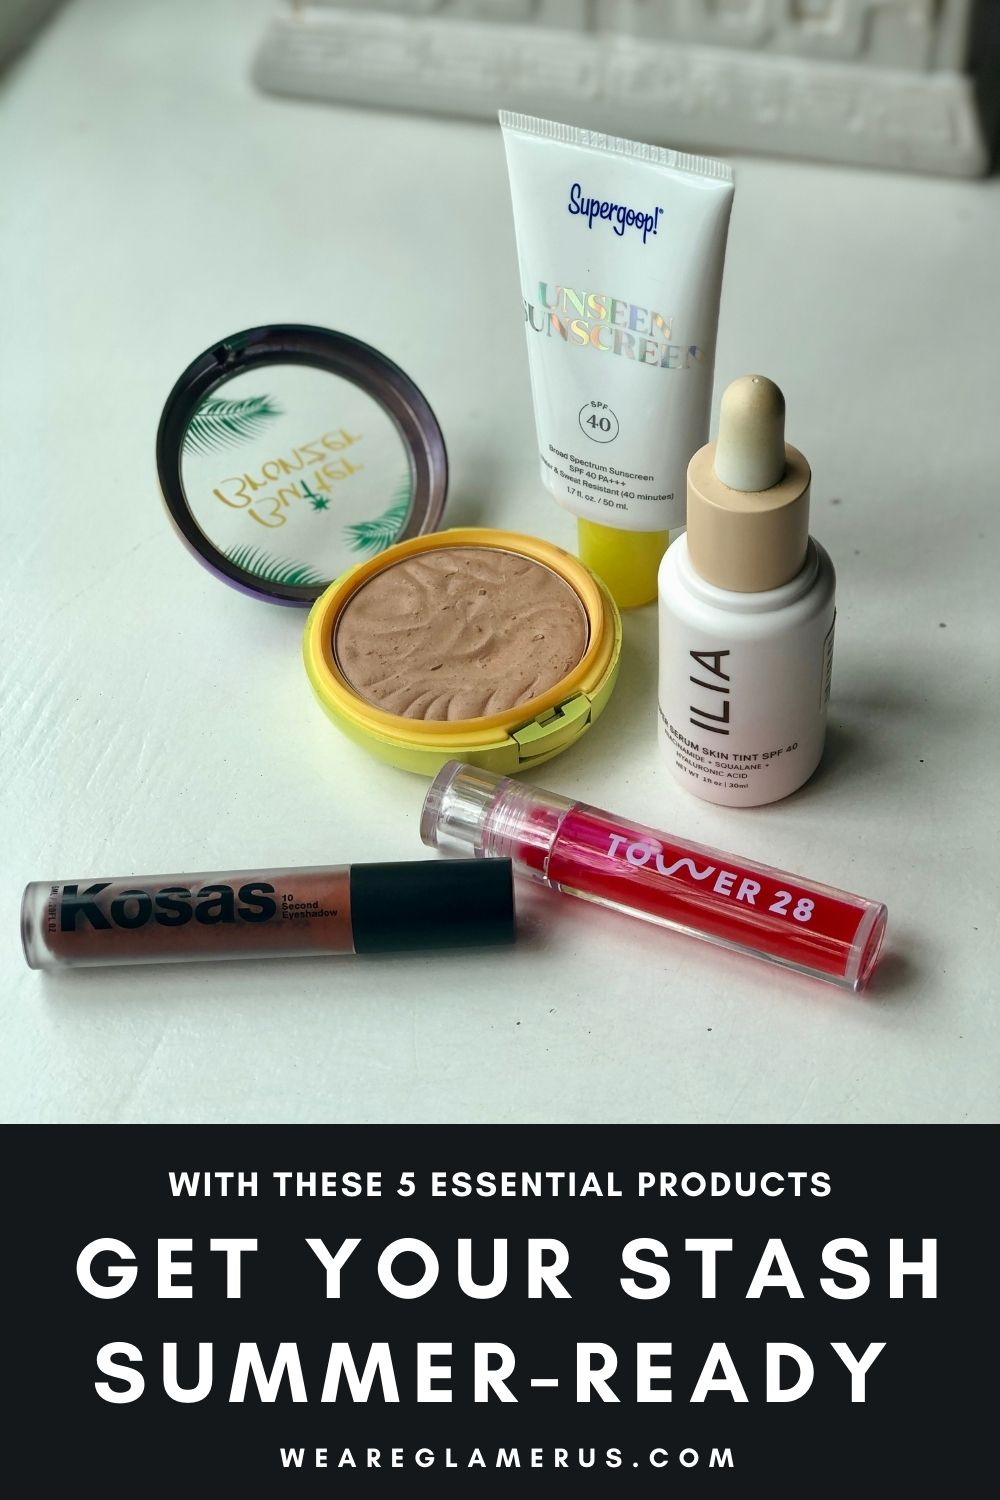 Looking to get your beauty stash summer-ready? Check out this post for my top tips!